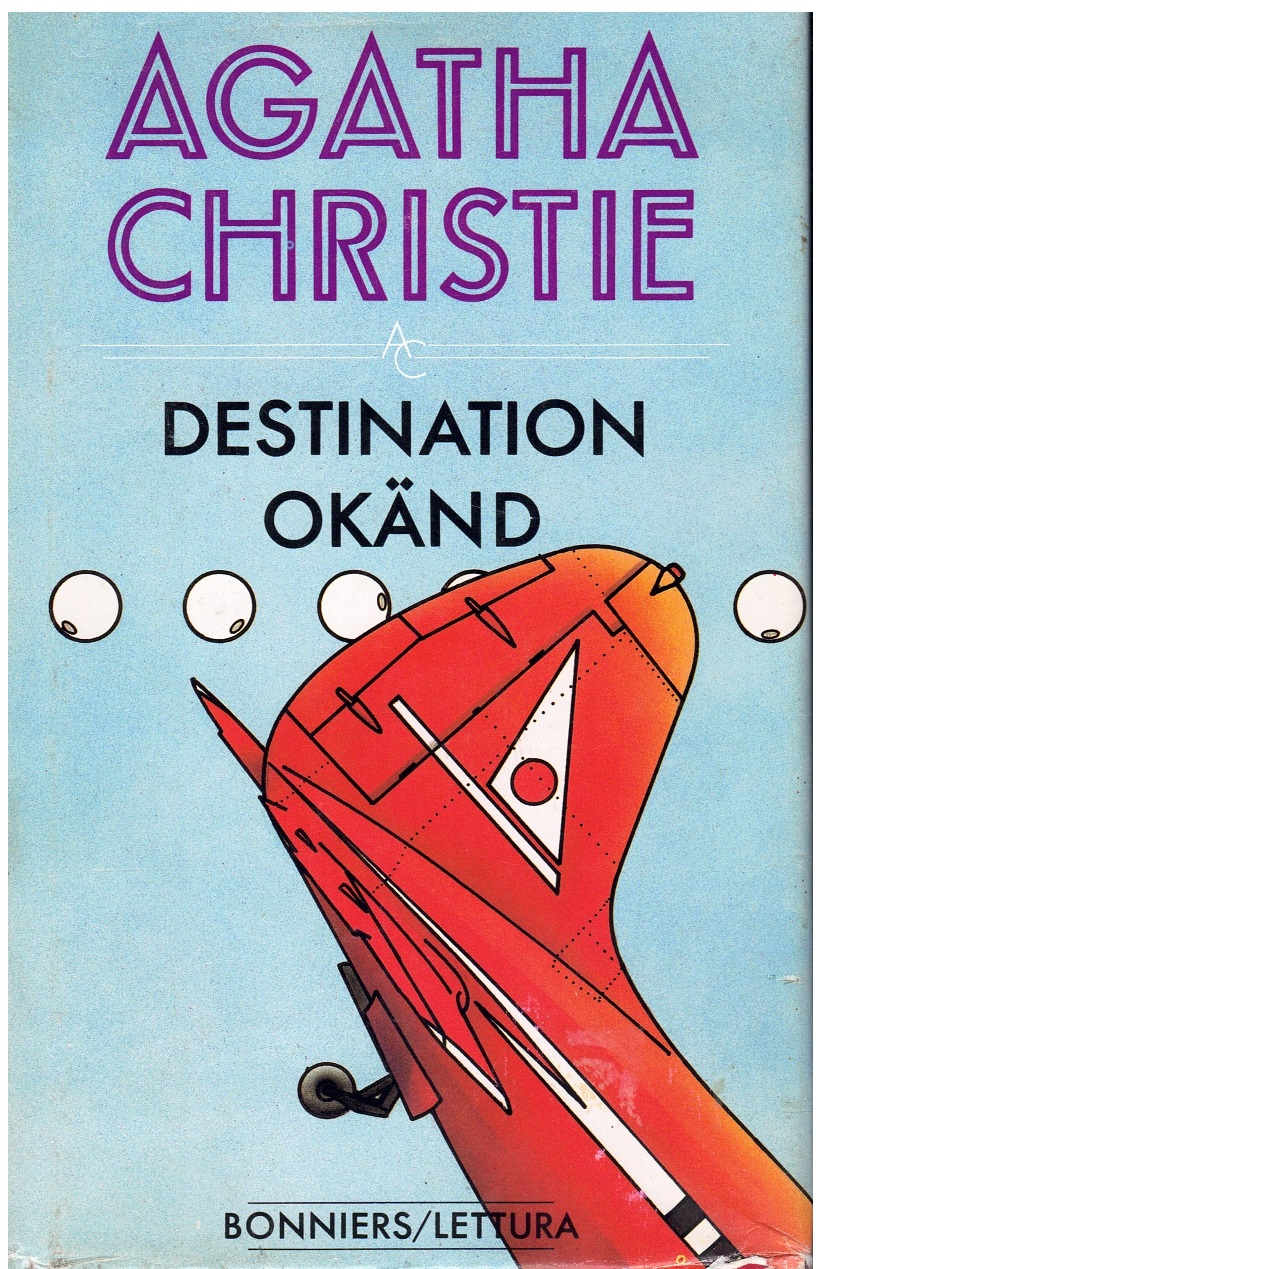 Destination okänd - Christie, Agatha